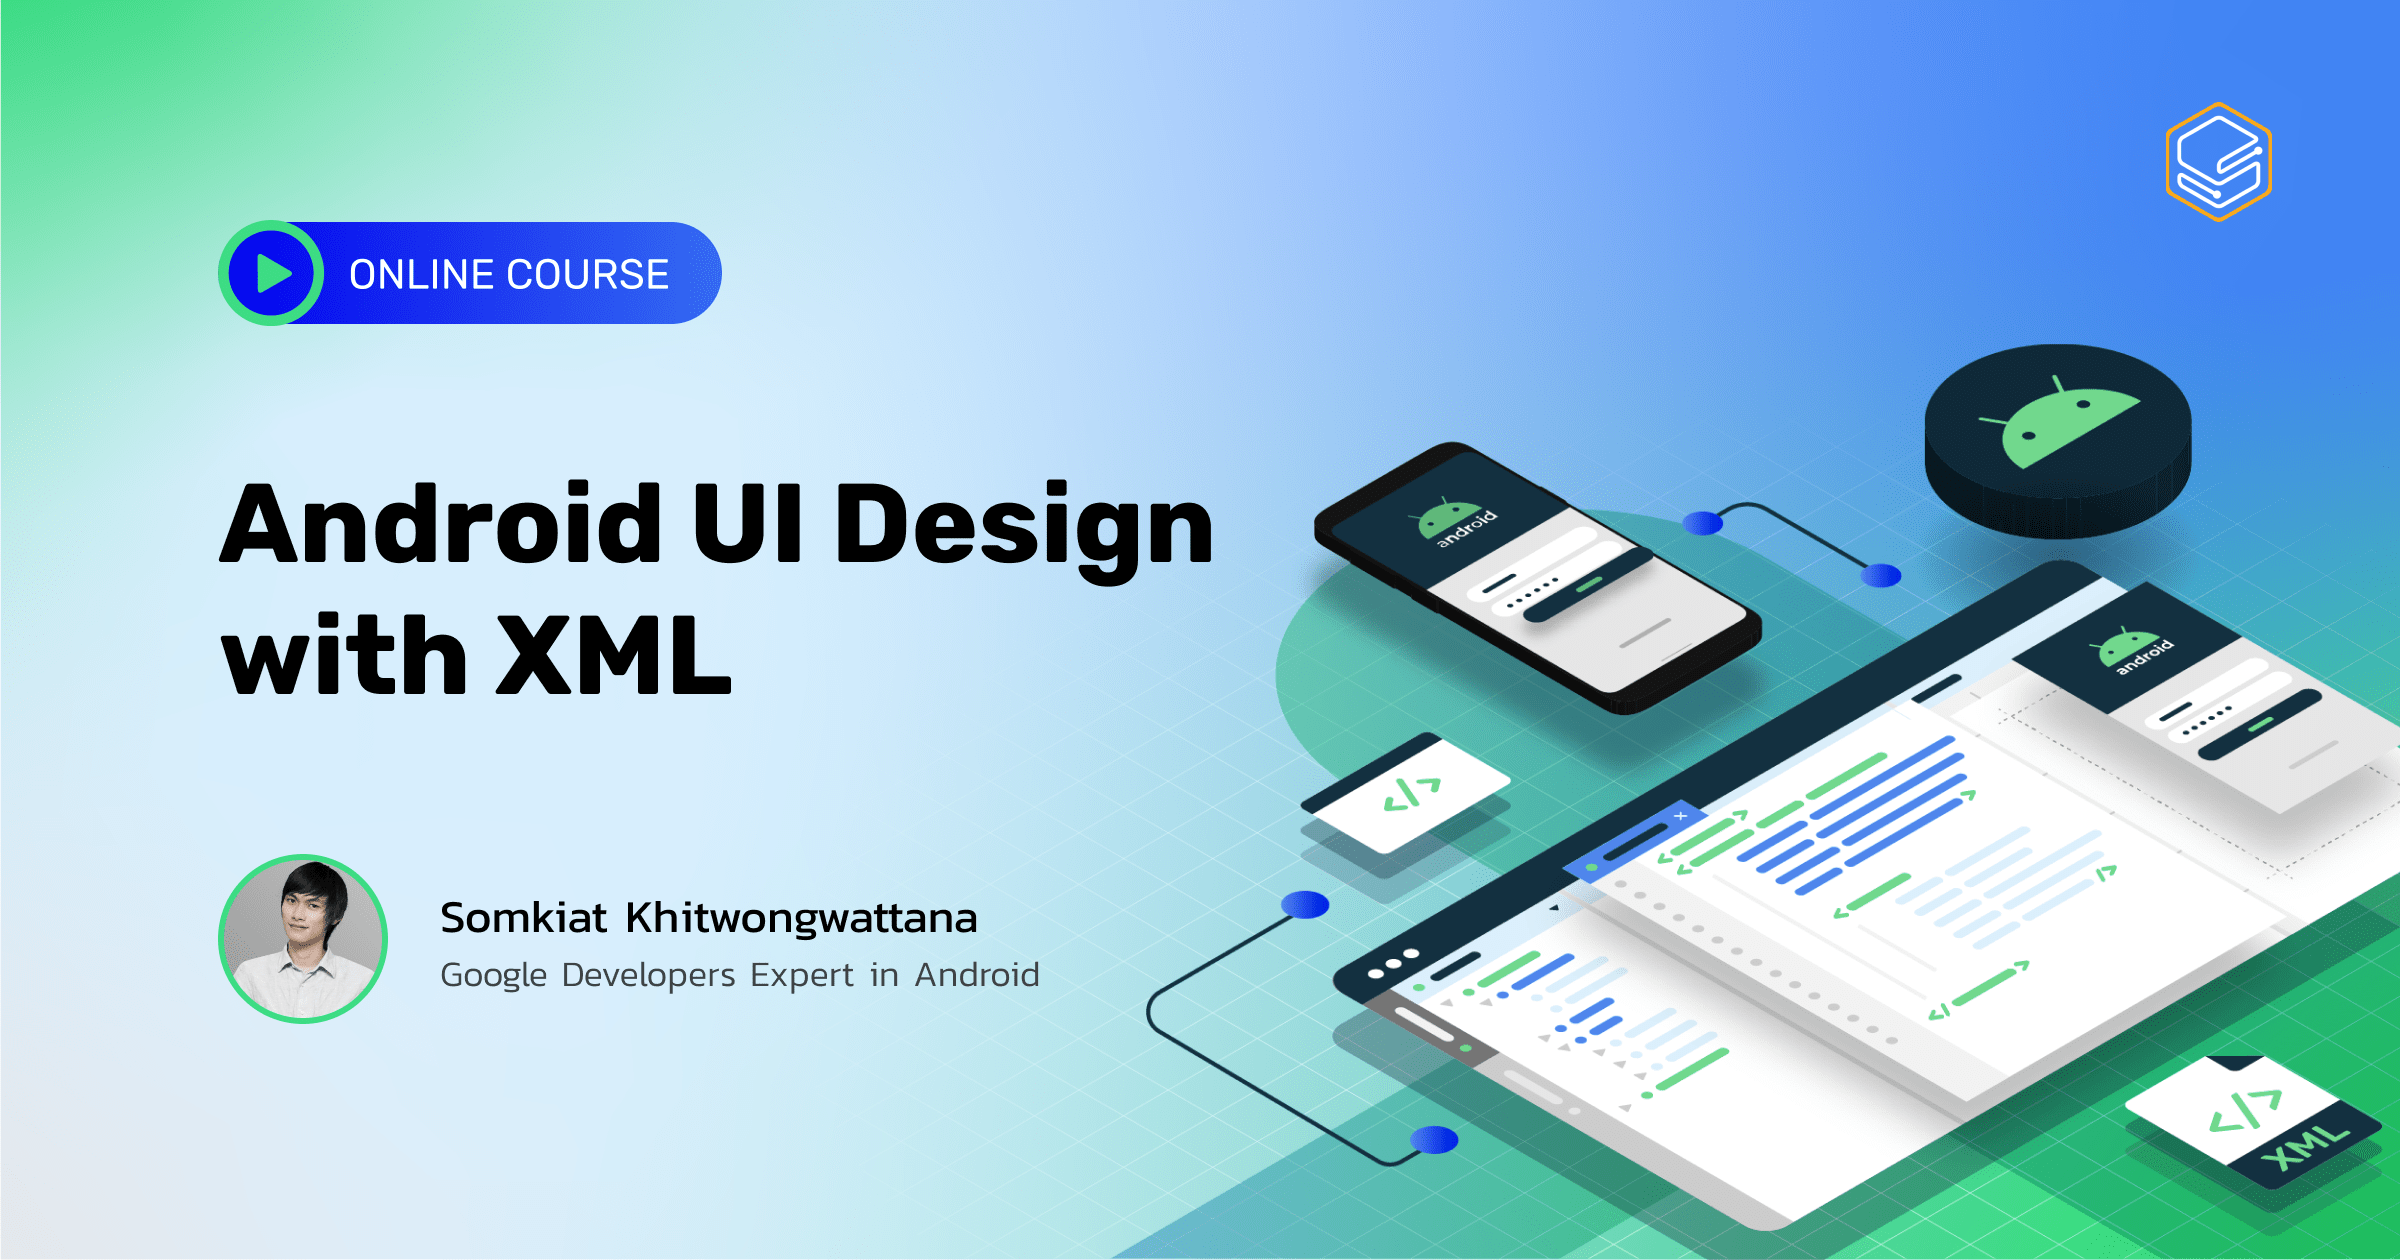 Android UI Design with XML